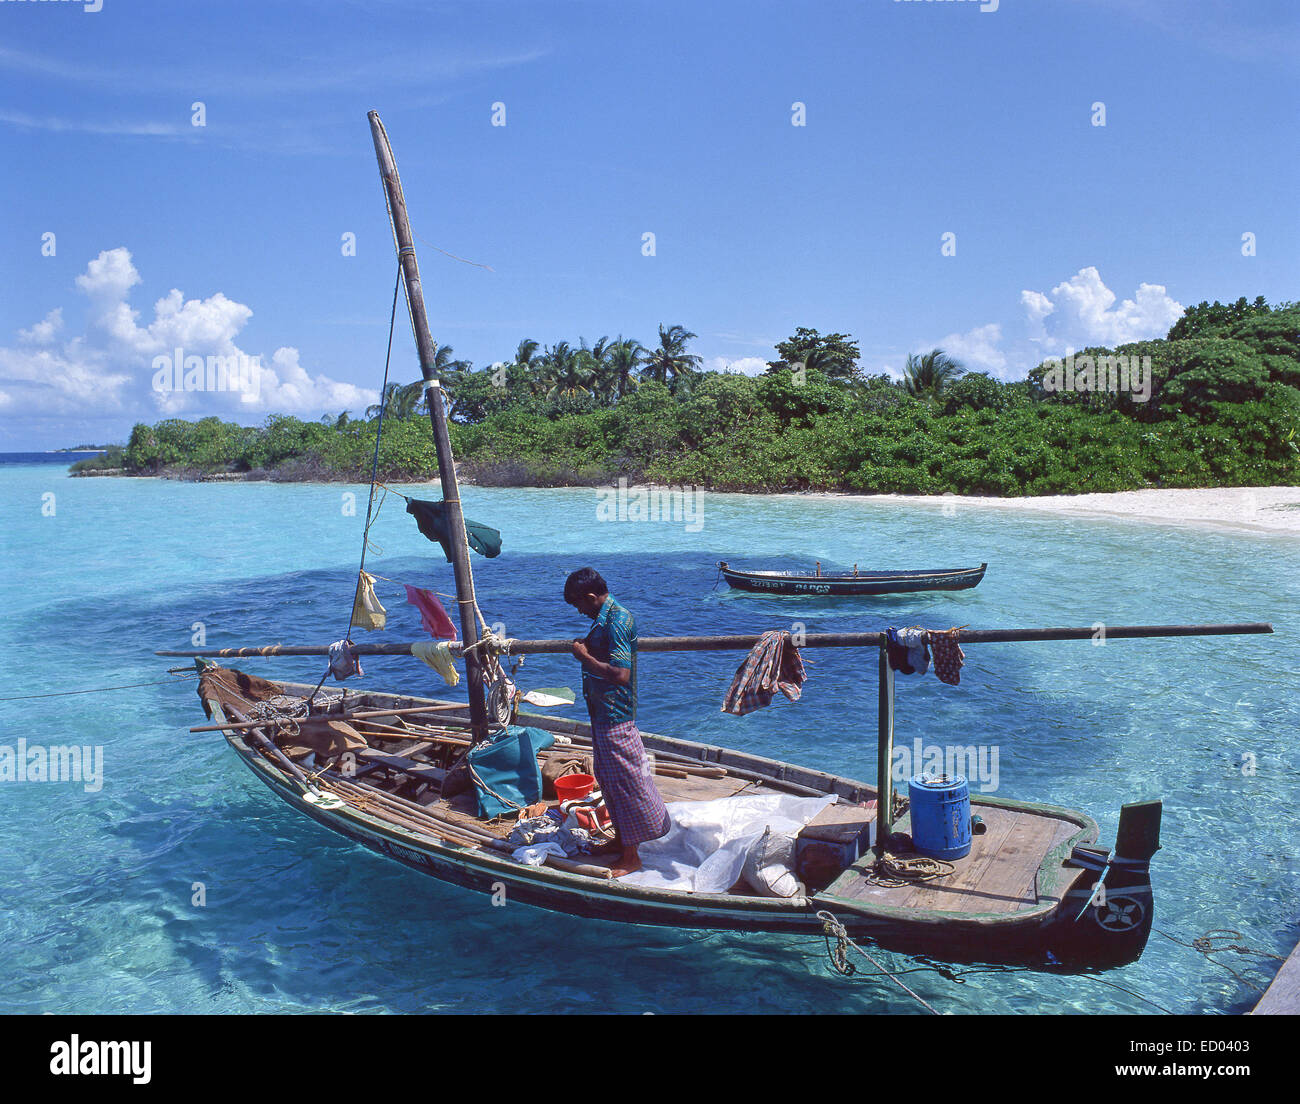 Dug-out fishing boat, Bandos, Kaafu Atoll, Republic of Maldives - Stock Image